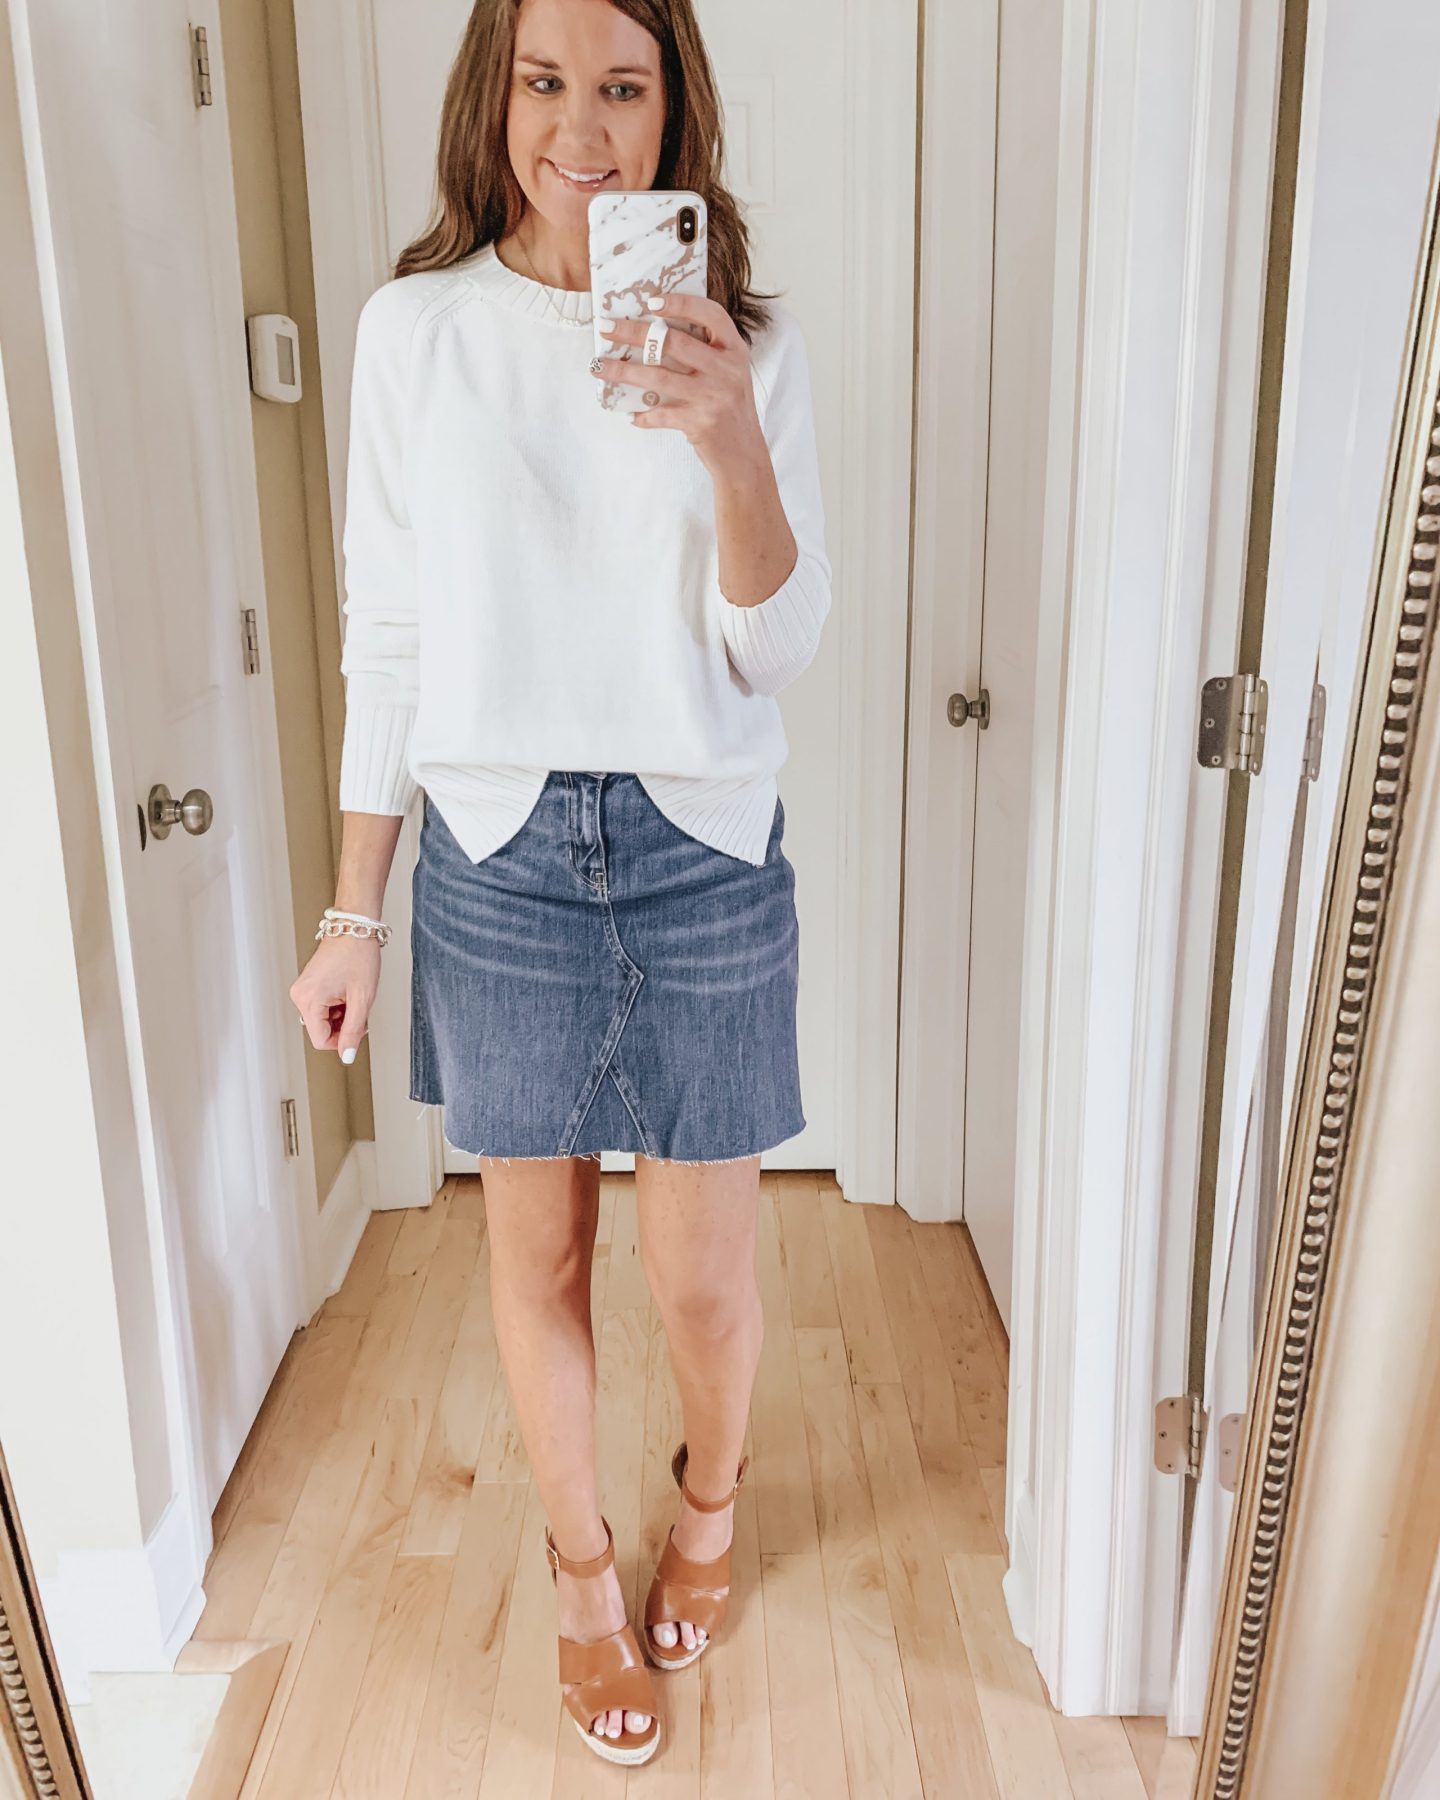 six ways to style a skirt, wedges, denim skirt, sweater, Old Navy